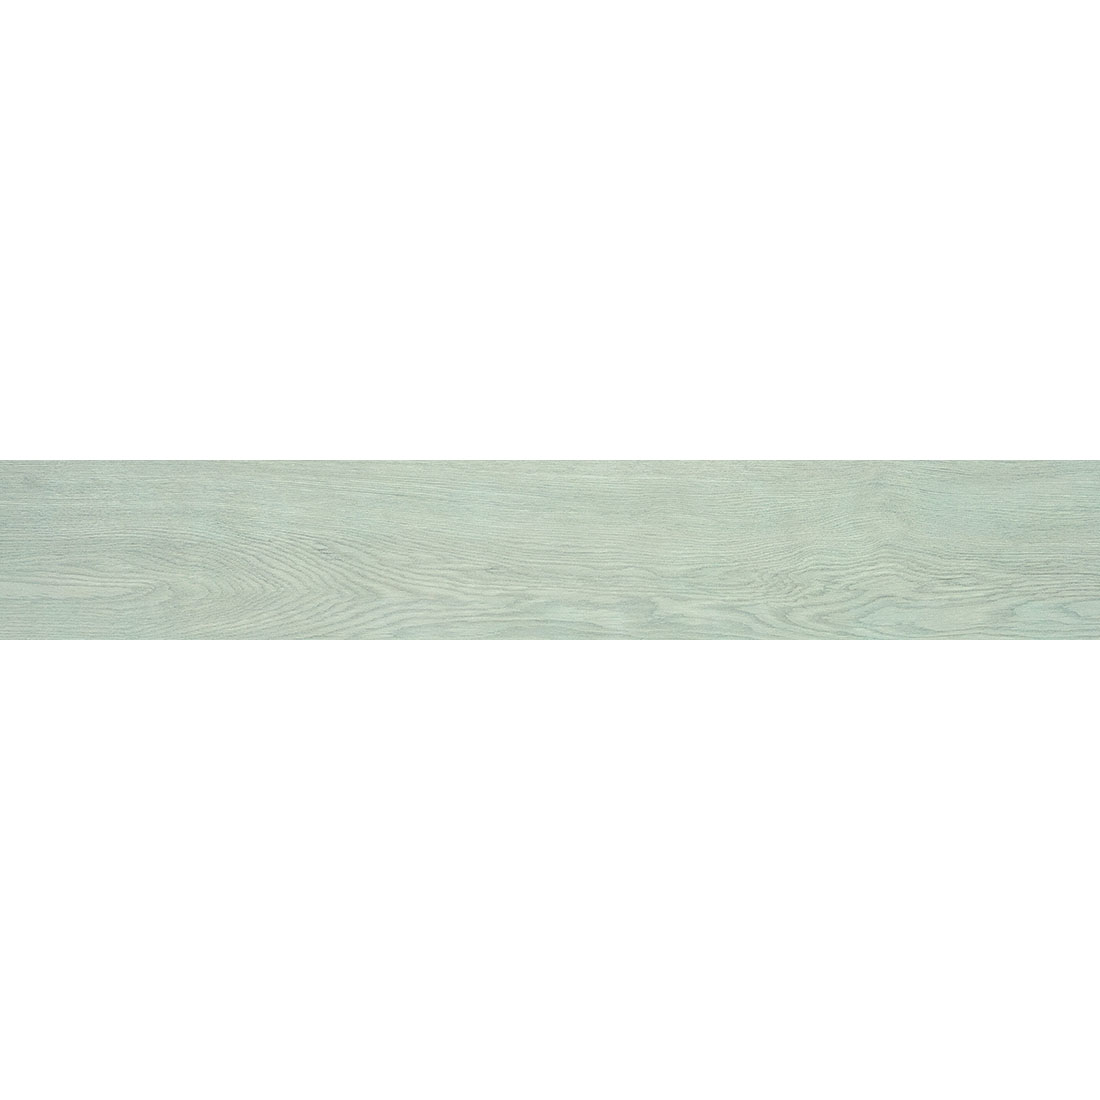 Candlewood 20x120 Gris Gloss 1